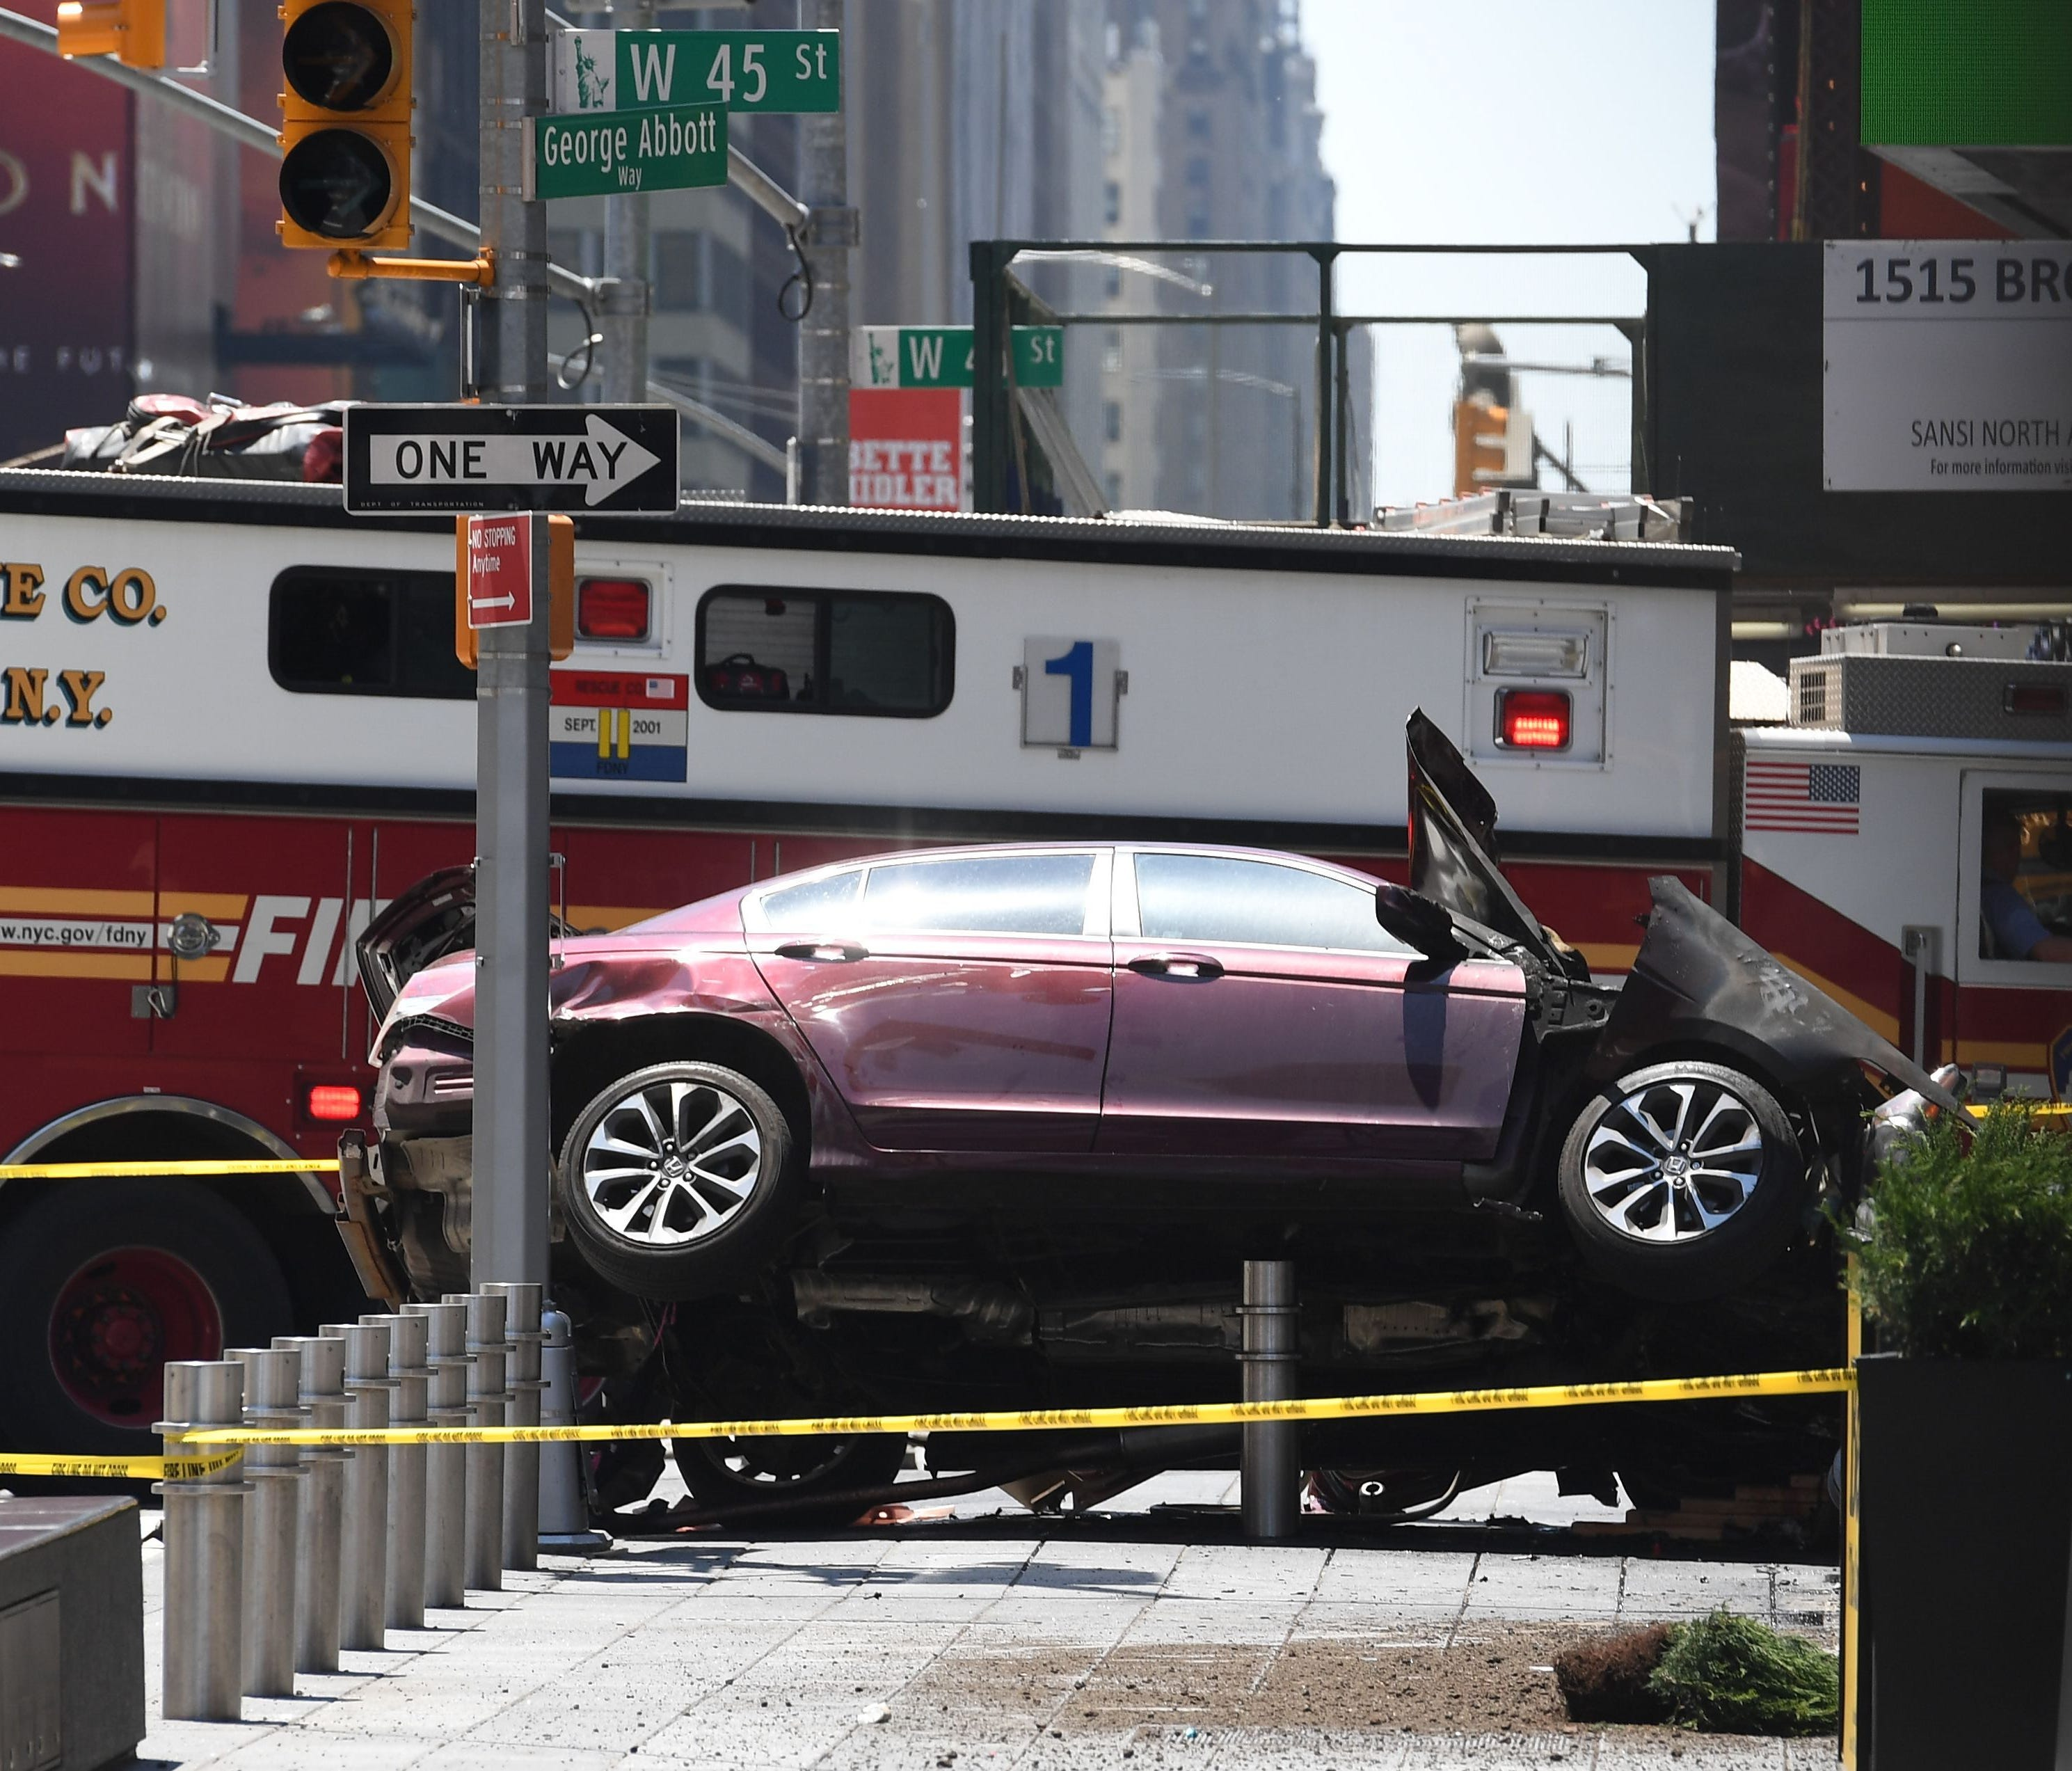 A wrecked car sits in the intersection of 45th and Broadway in Times Square on May 18, 2017, in New York City.